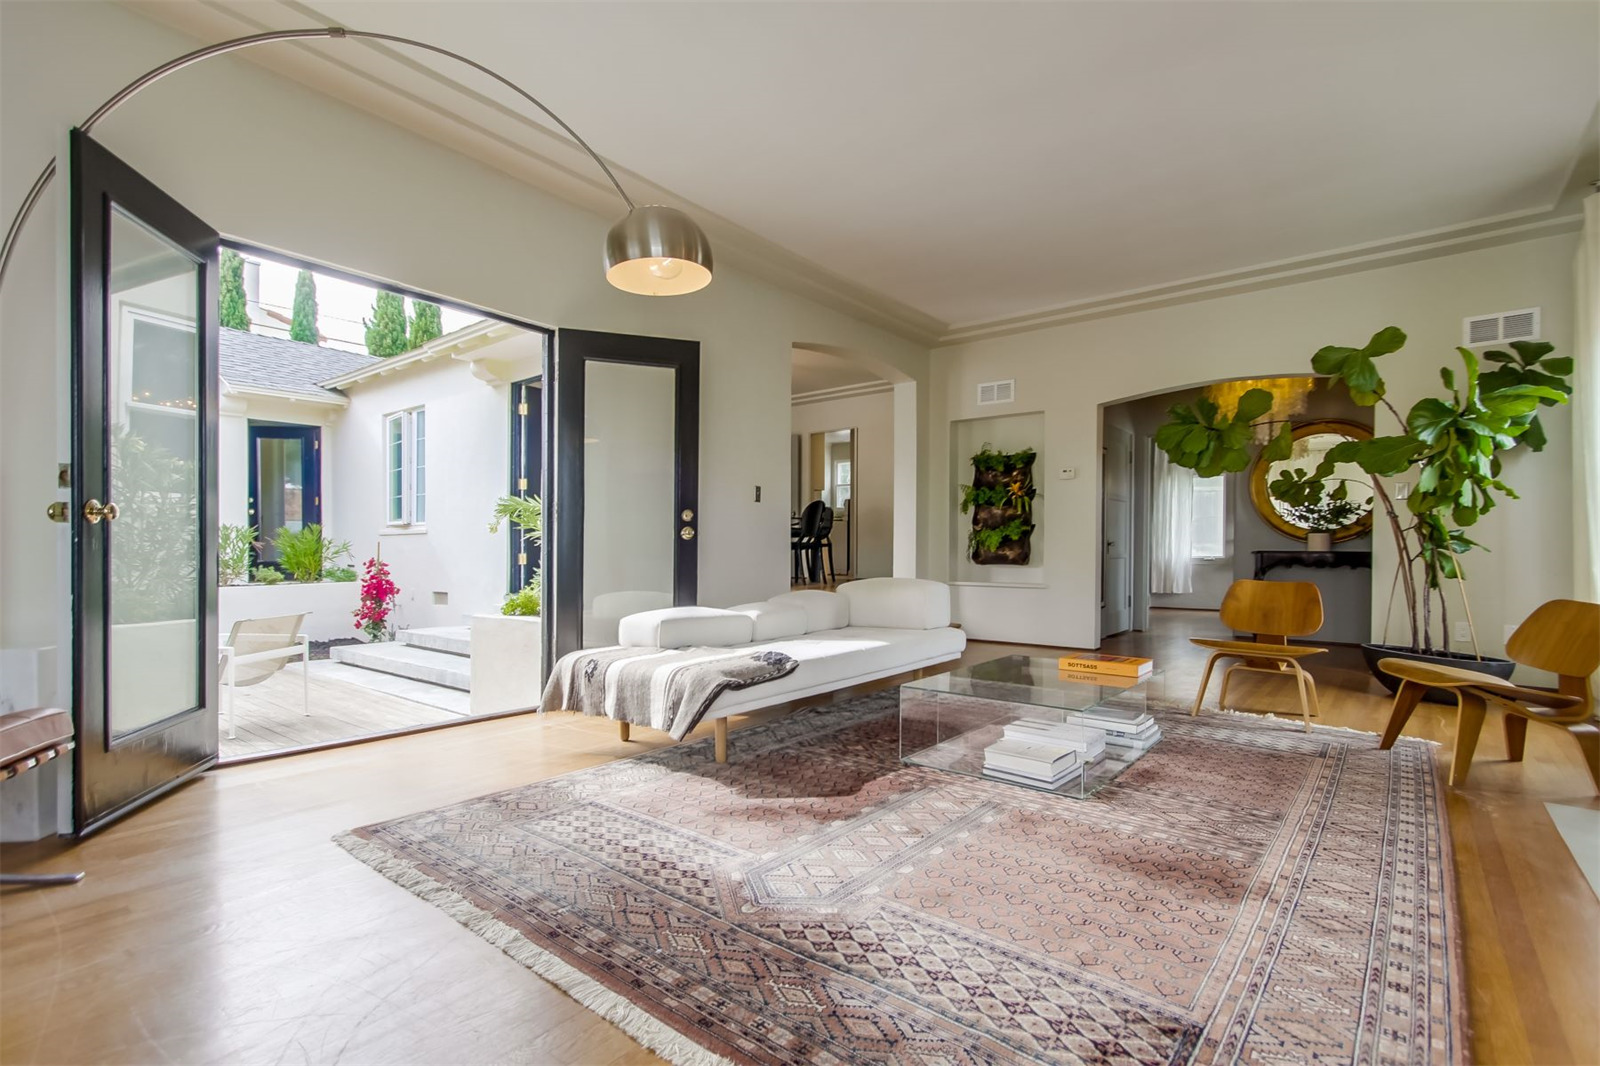 1930s bungalow is the perfect starter house provided you have 1m